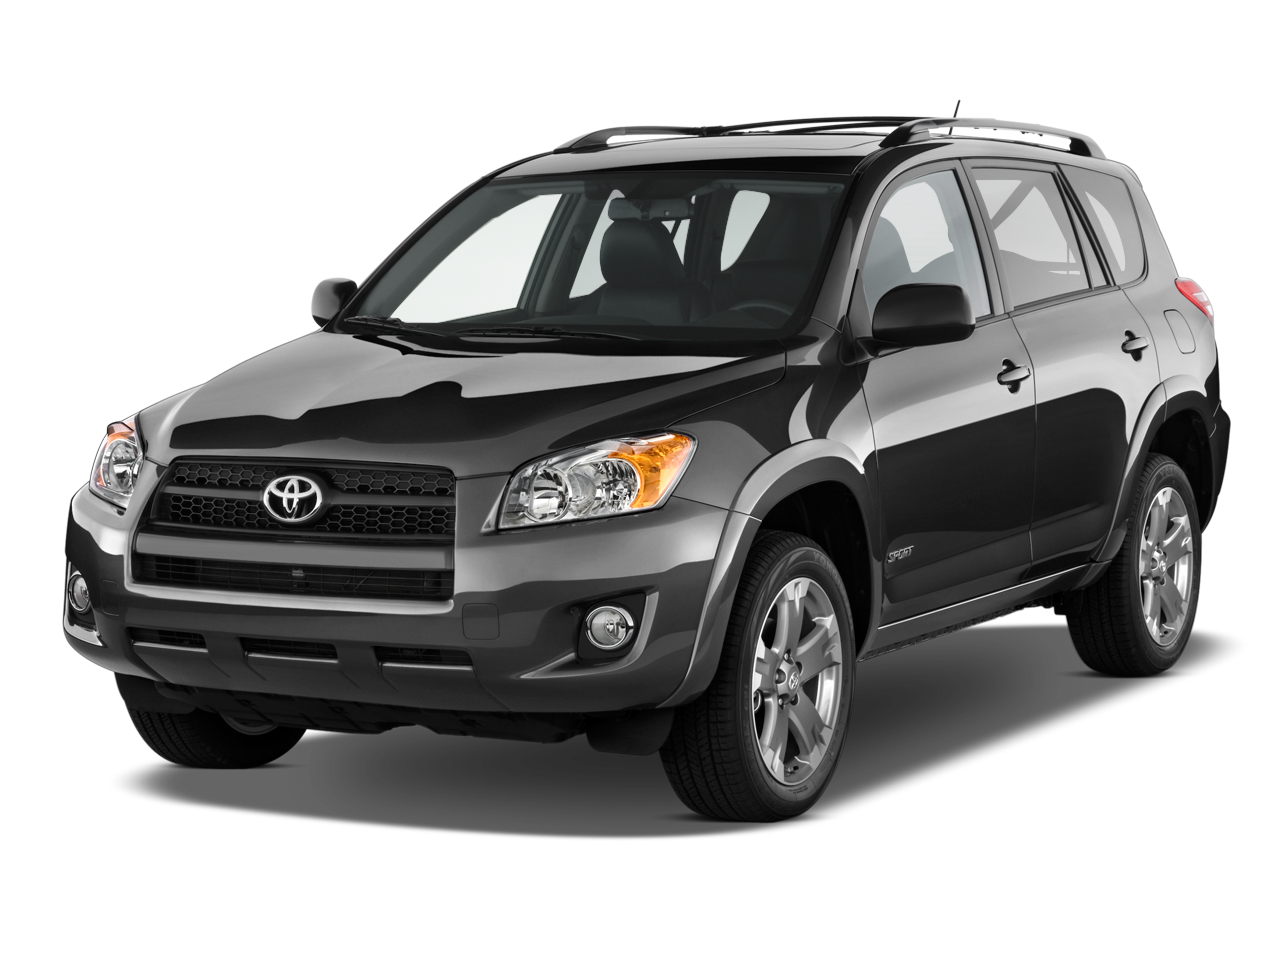 2009 toyota rav4 4x4 toyota crossover suv review. Black Bedroom Furniture Sets. Home Design Ideas